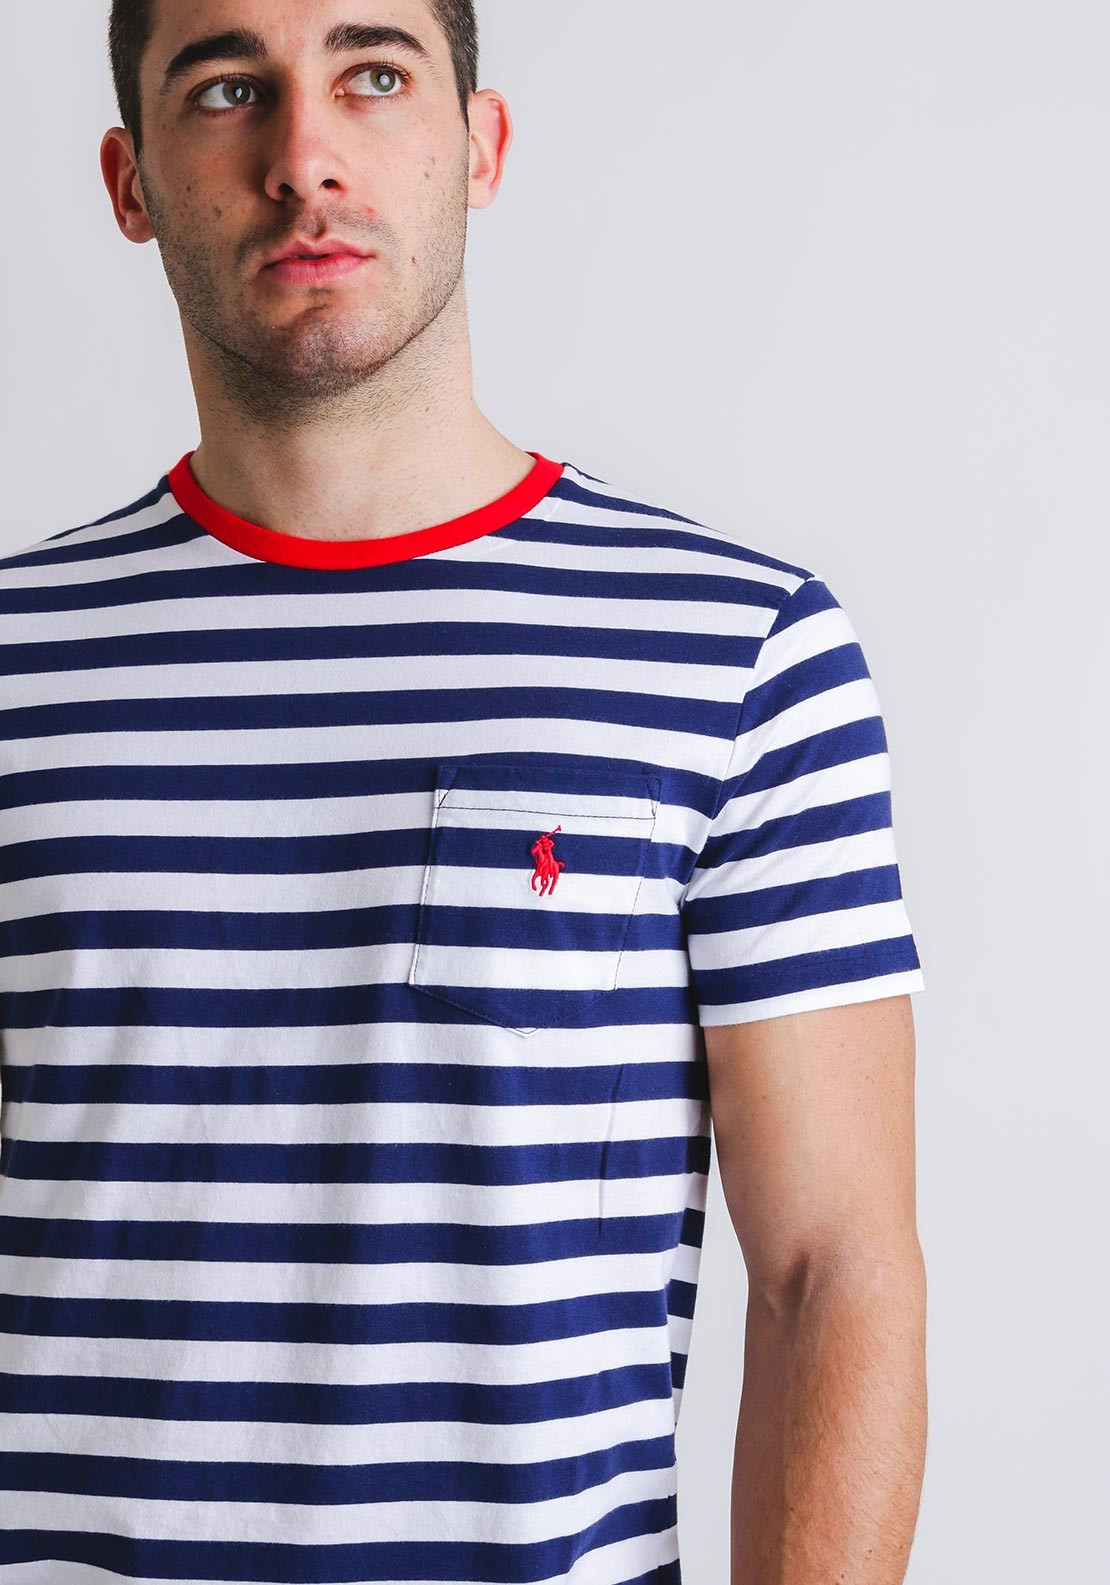 f8233d5af4d25b Ralph Lauren Slim Fit Striped T-Shirt, Navy. Be the first to review this  product